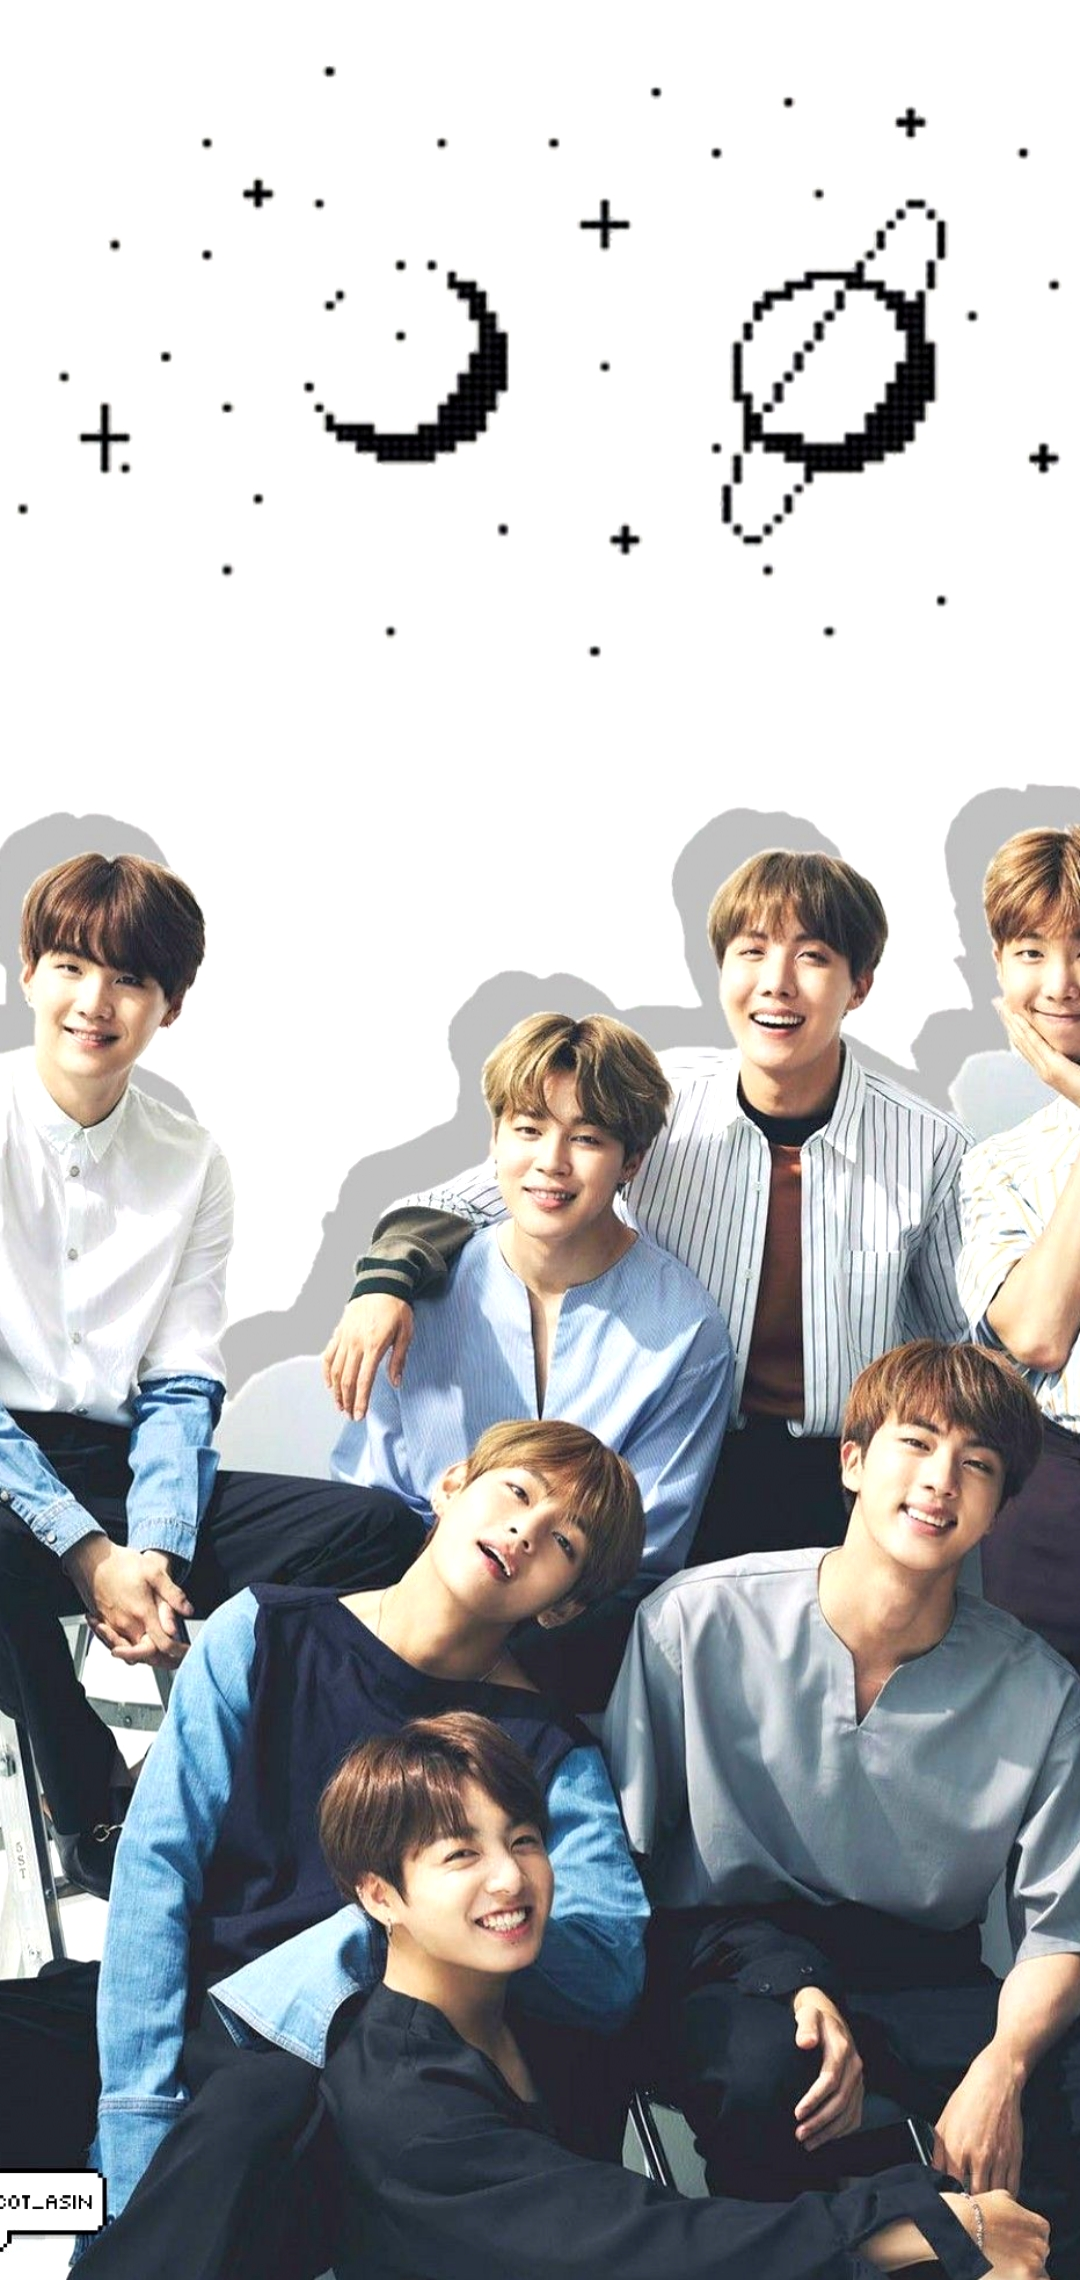 120 ᐈ Bts Wallpapers Download Hd Wallpaper Of Bts All Memebers